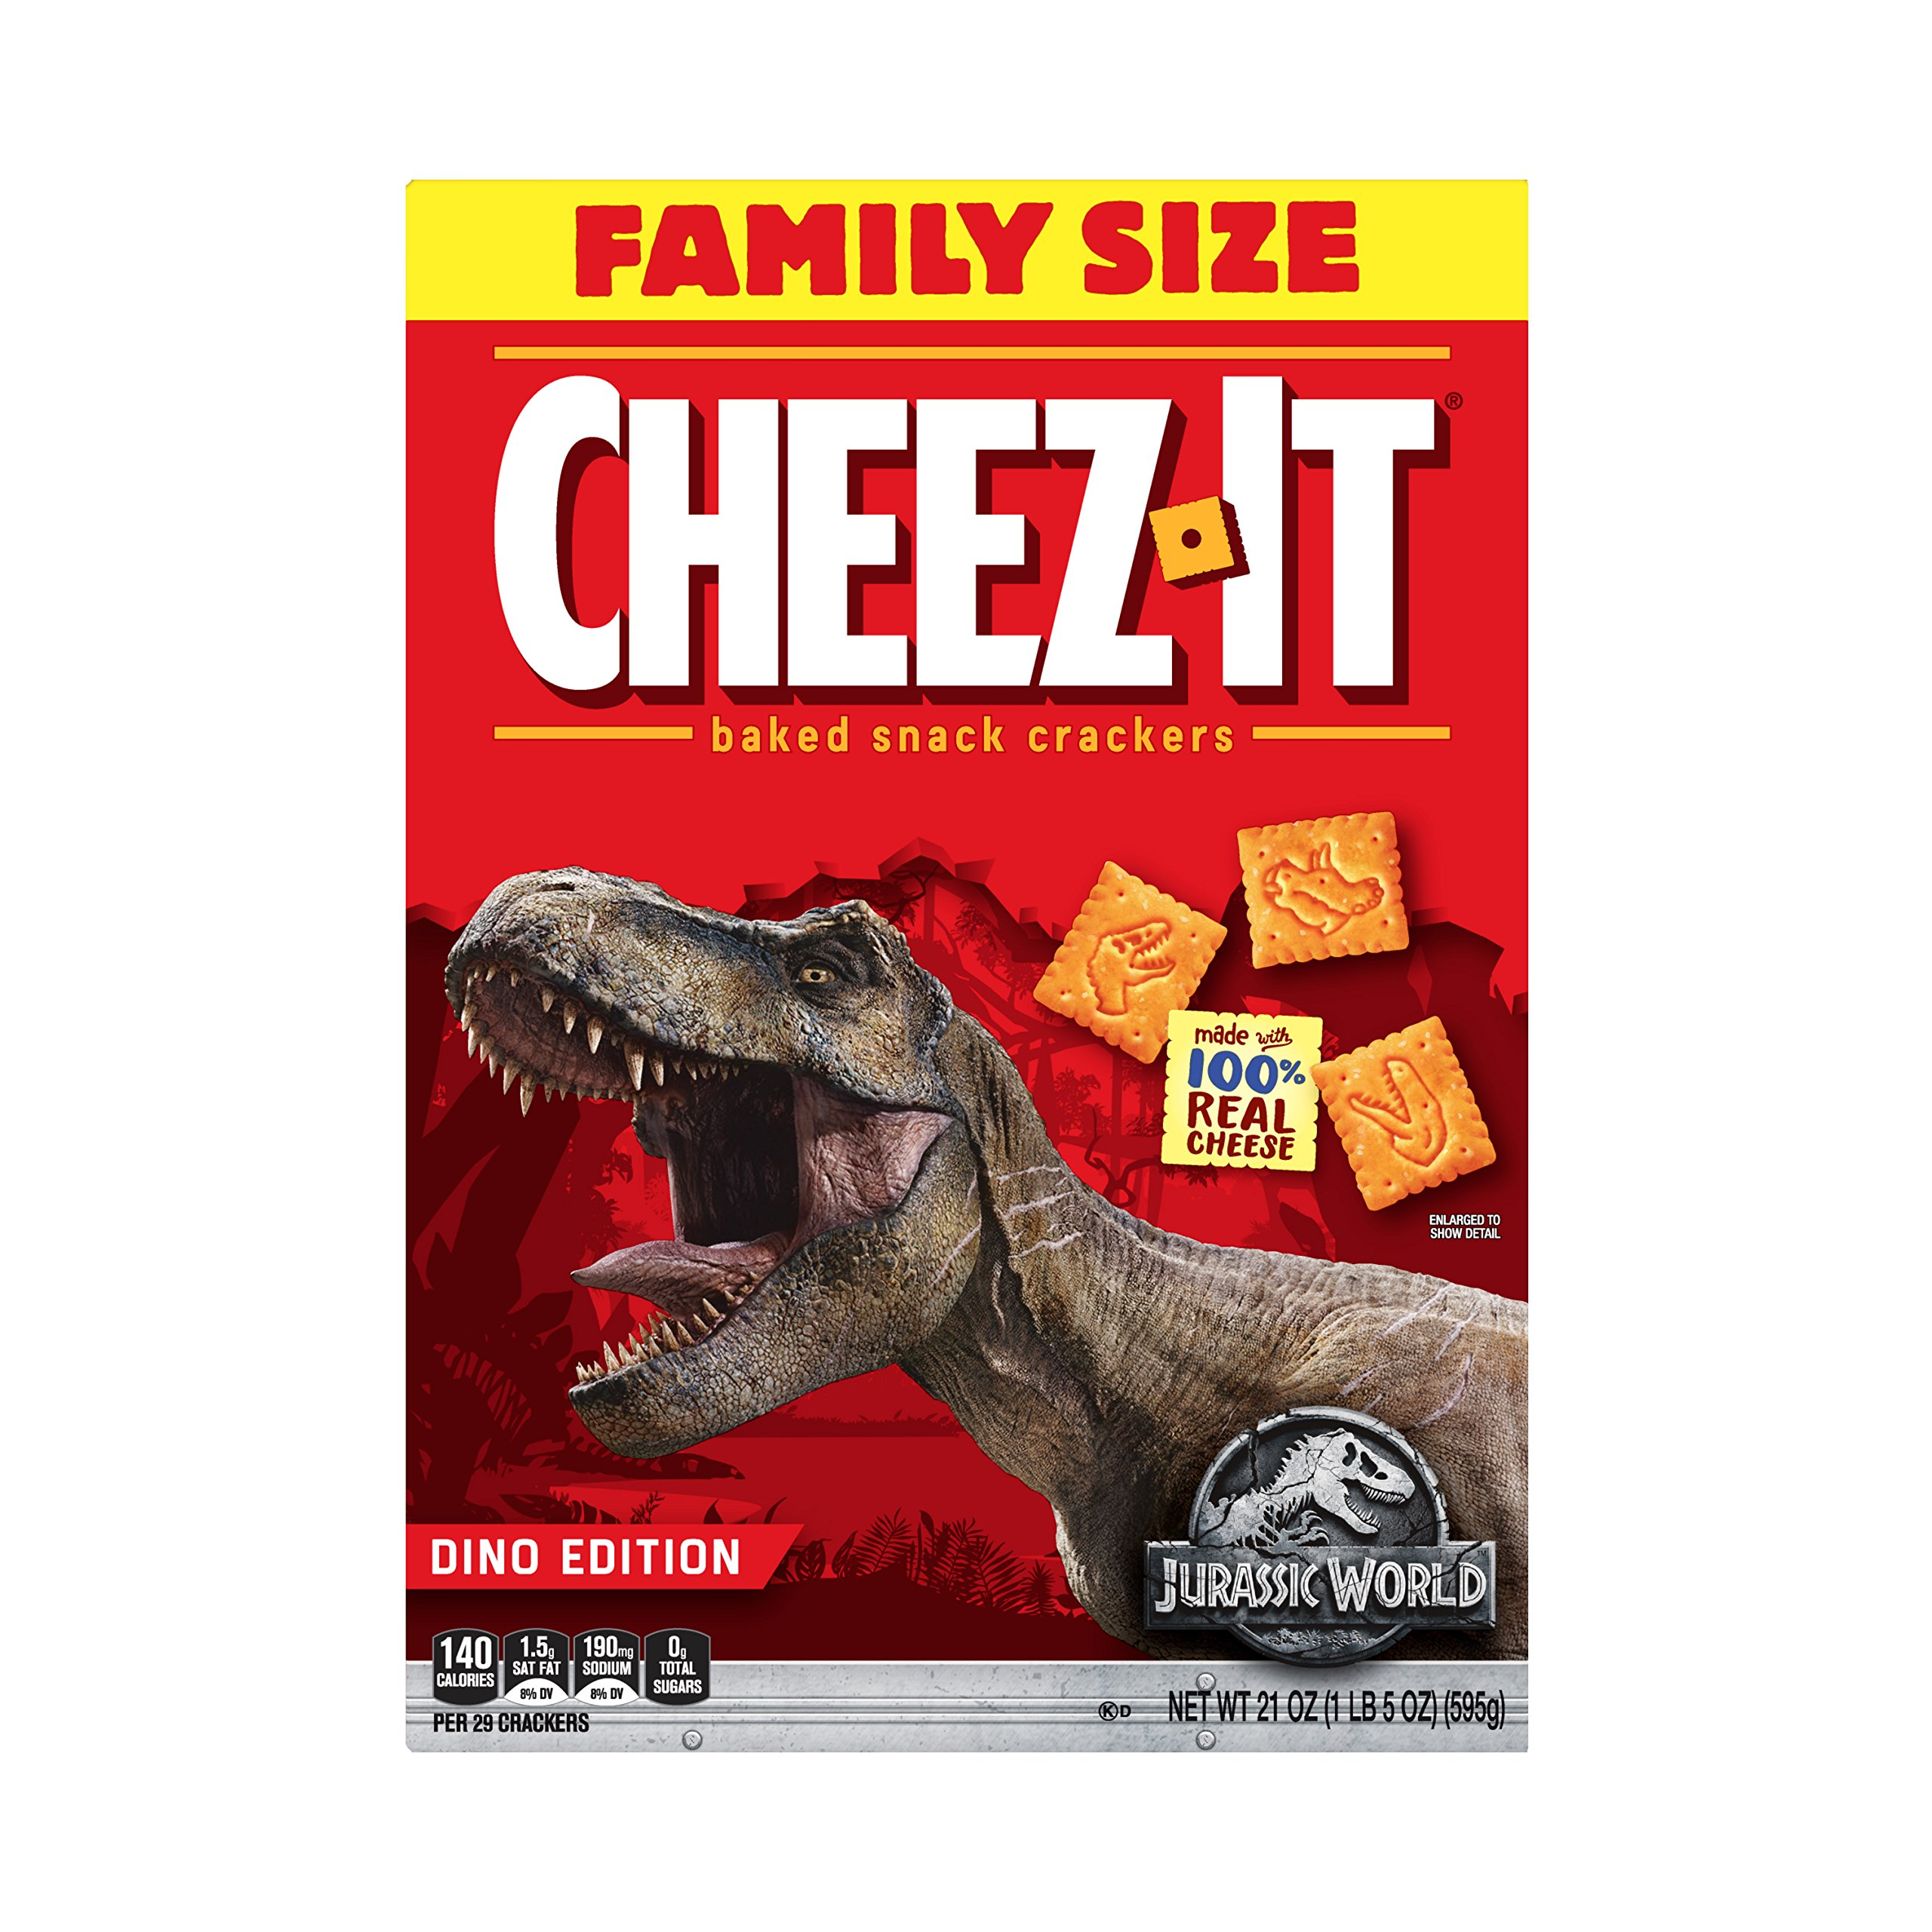 Cheez-It Despicable Me 3 'Family Size' (21-Ounce Box)(Pack of 12) by Cheez-It (Image #6)